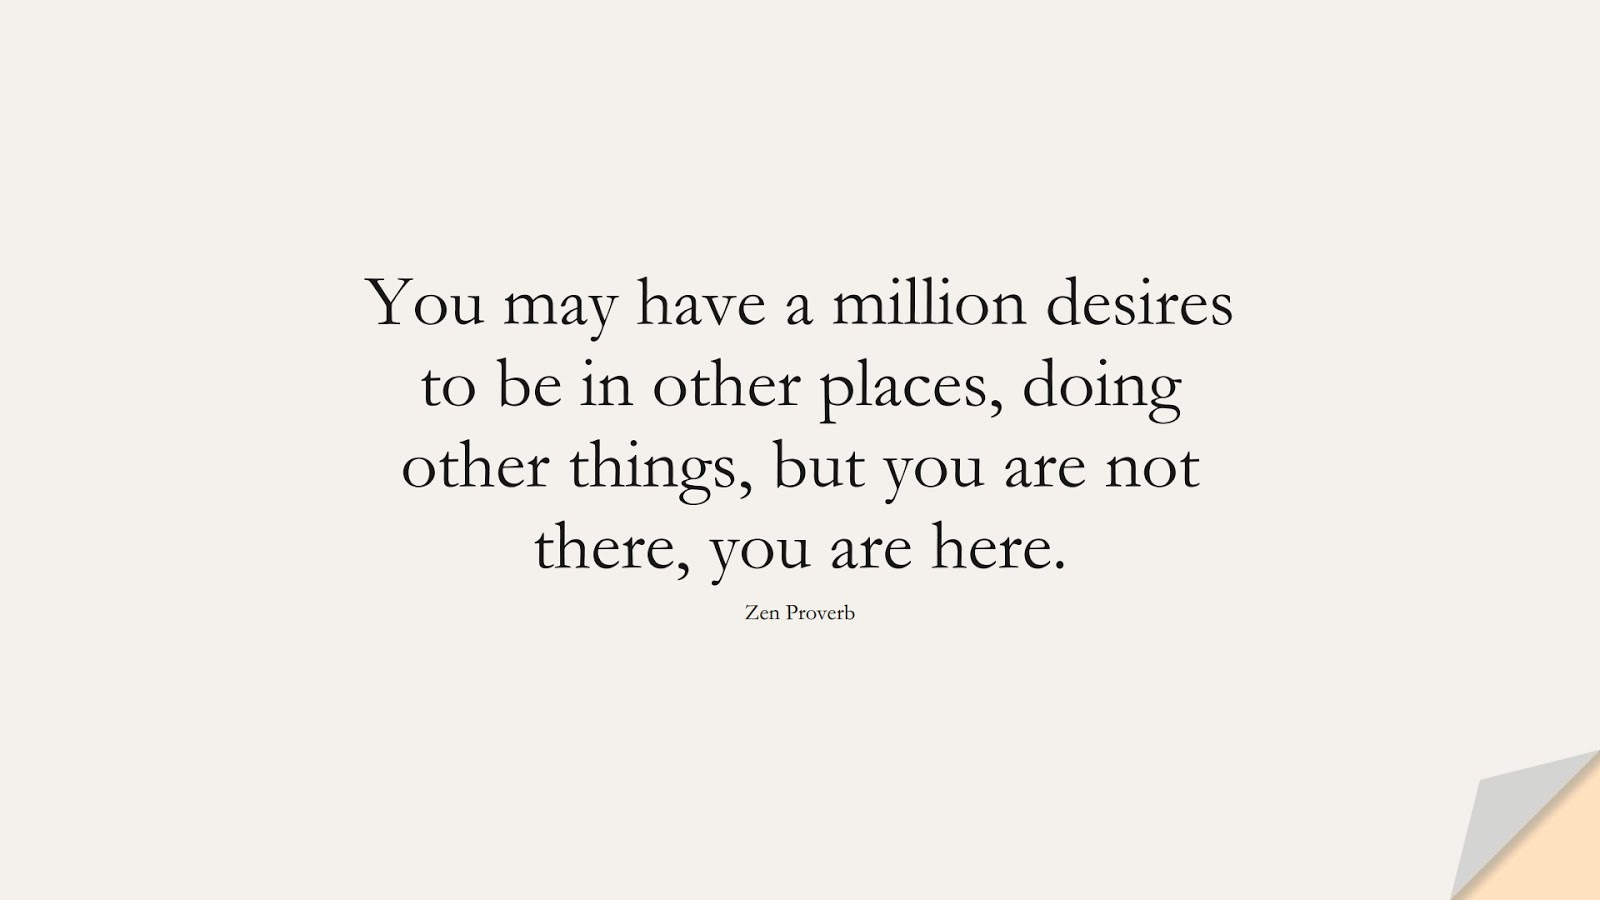 You may have a million desires to be in other places, doing other things, but you are not there, you are here. (Zen Proverb);  #DepressionQuotes